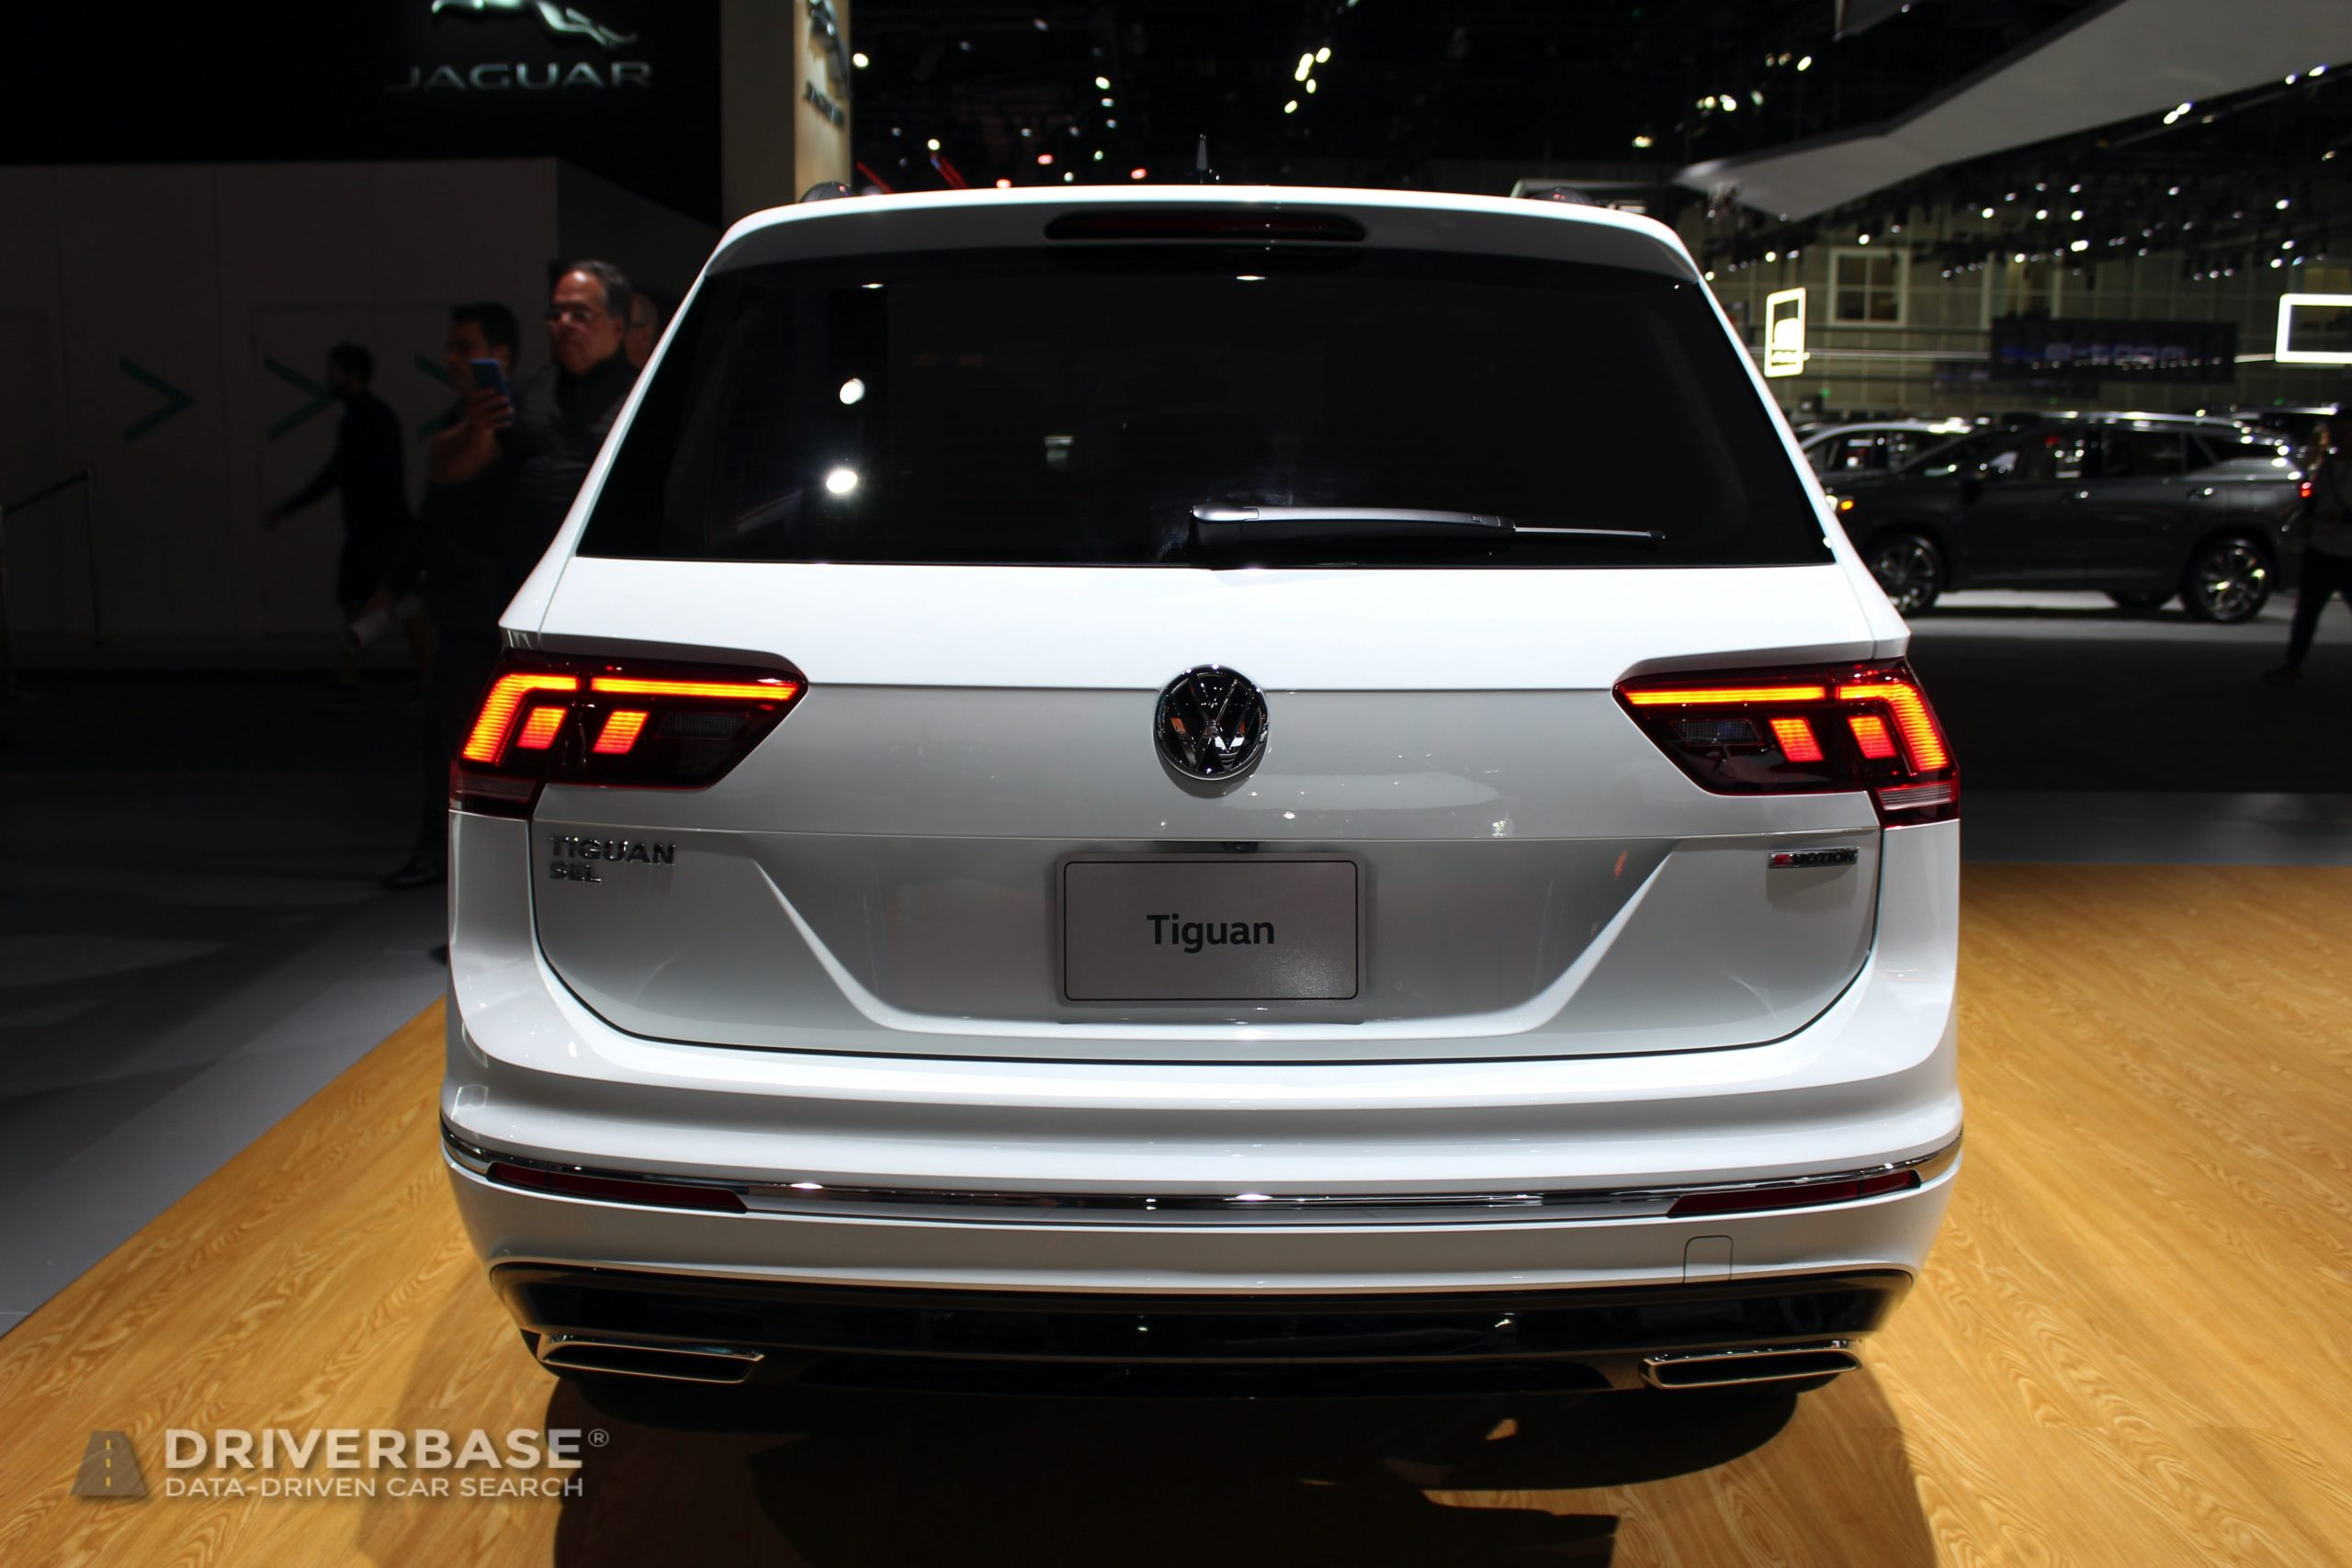 2020 Volkswagen Tiguan SEL Premium R-Line at the 2019 Los Angeles Auto Show